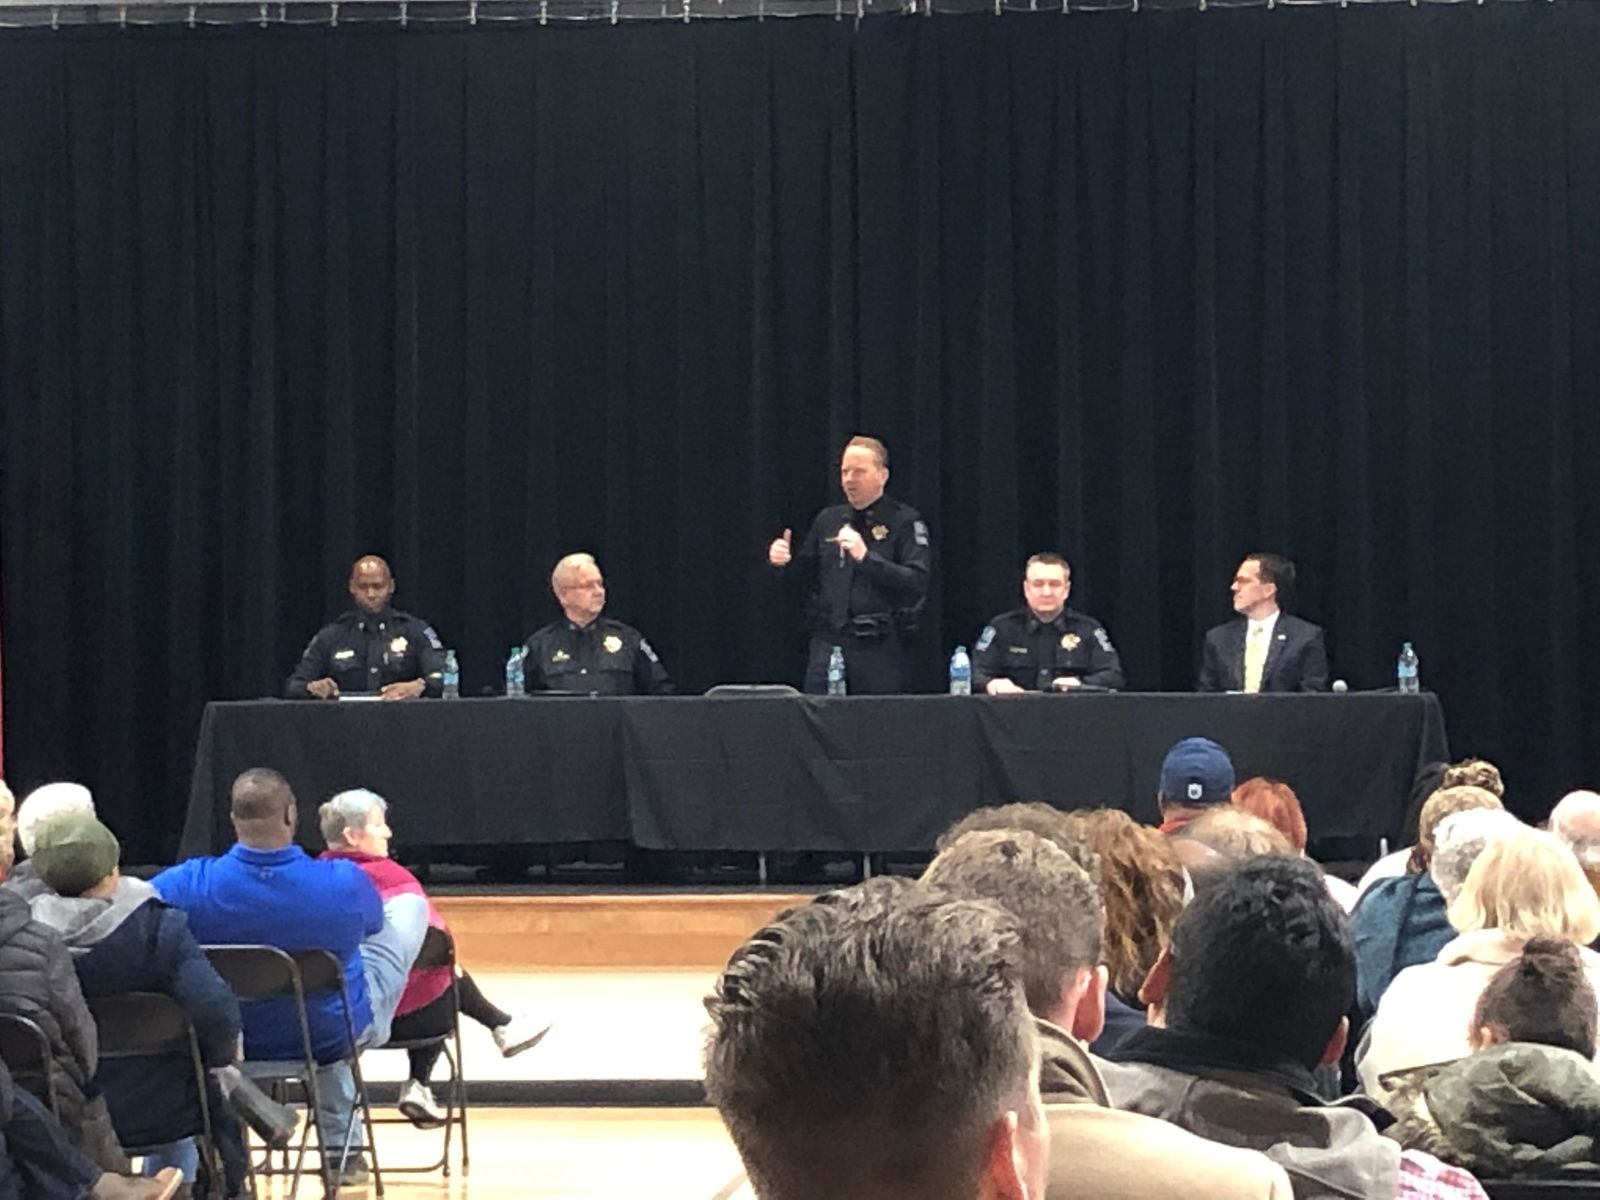 Four candidates for Tulsa Police Chief faced tough questions Friday, Jan. 17, 2020, as the selection process nears the finish line. (Mummolo/KTUL)<p></p>